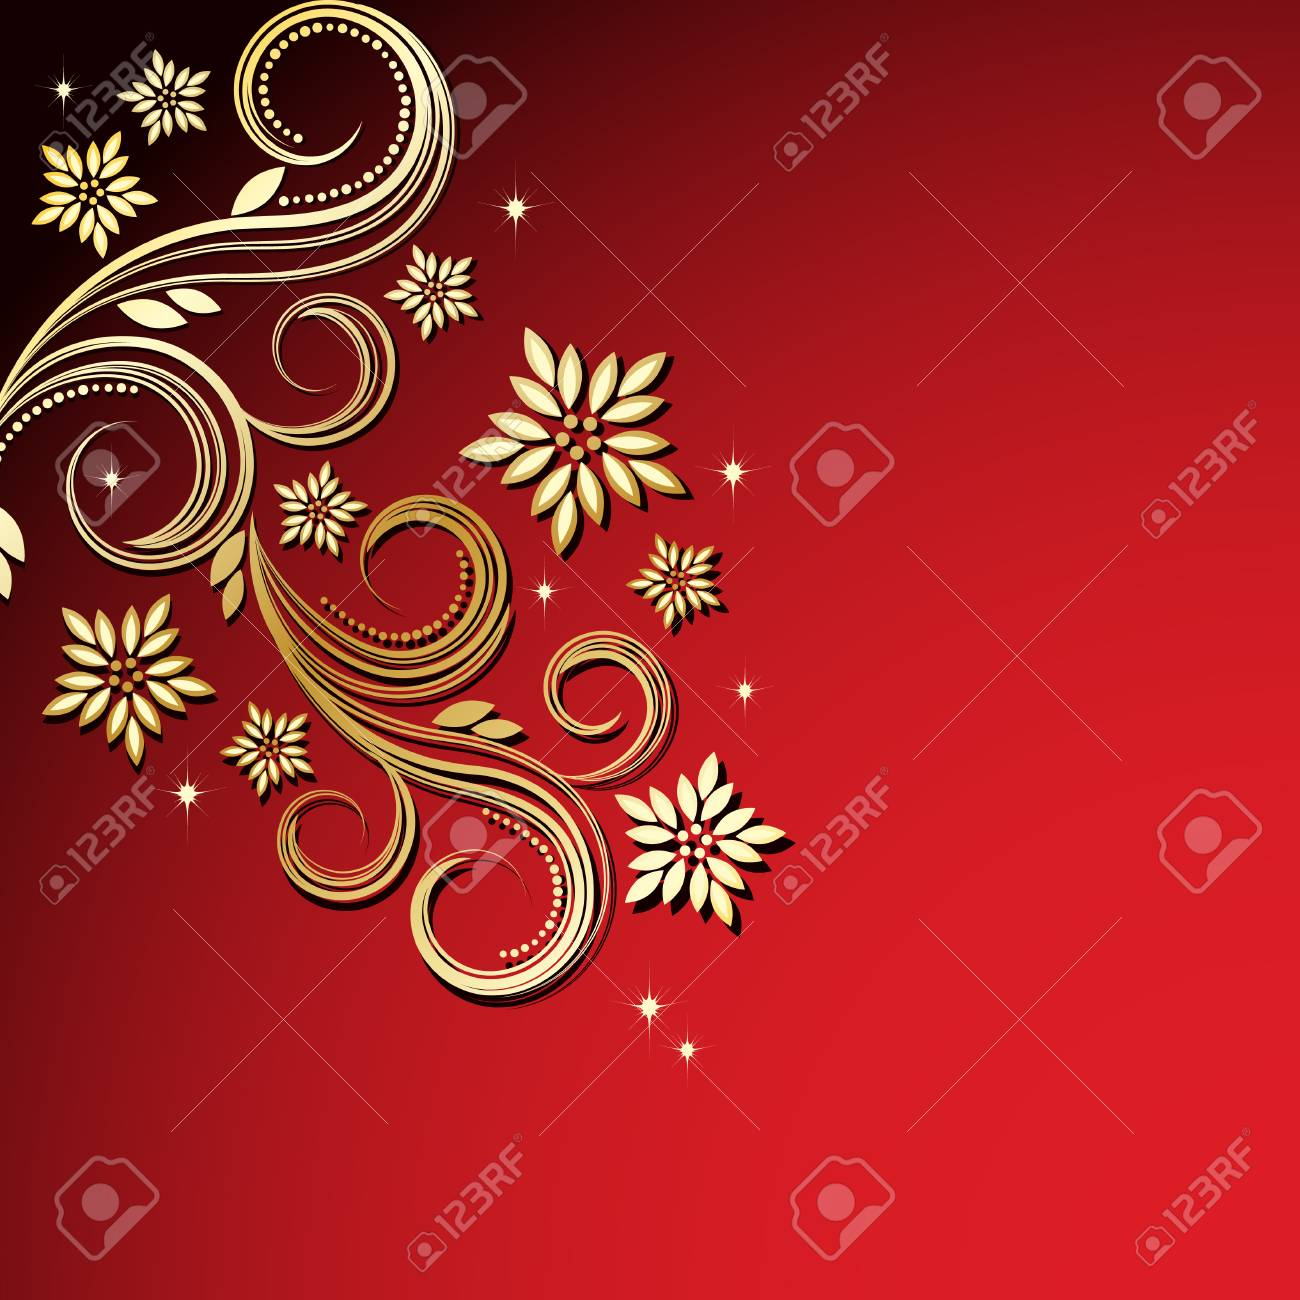 Holiday floral background Stock Vector - 6349397